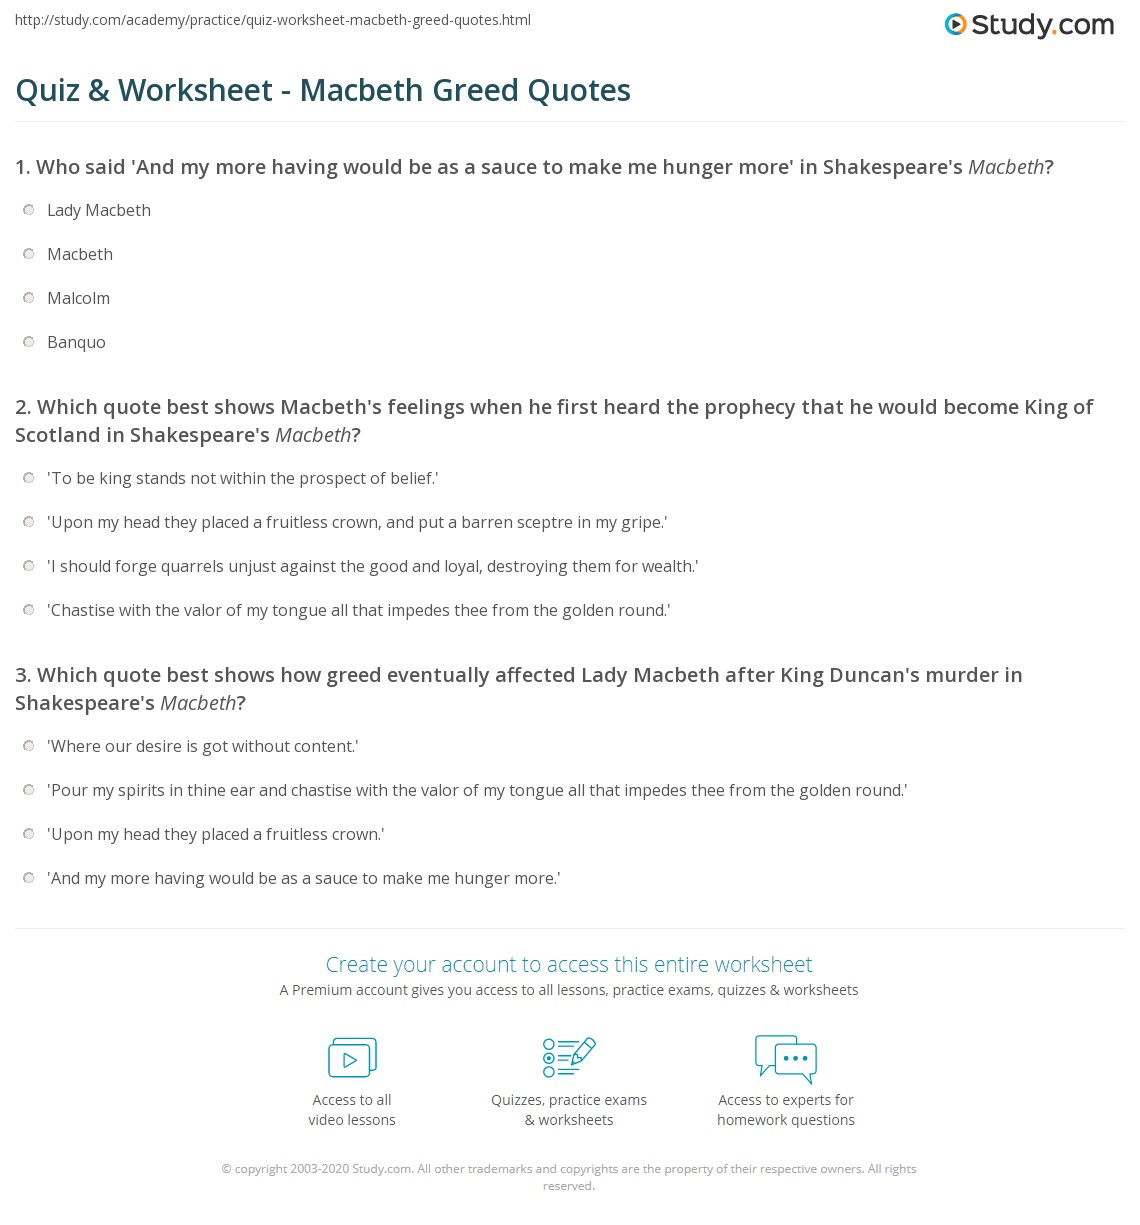 macbeth quotes and meanings